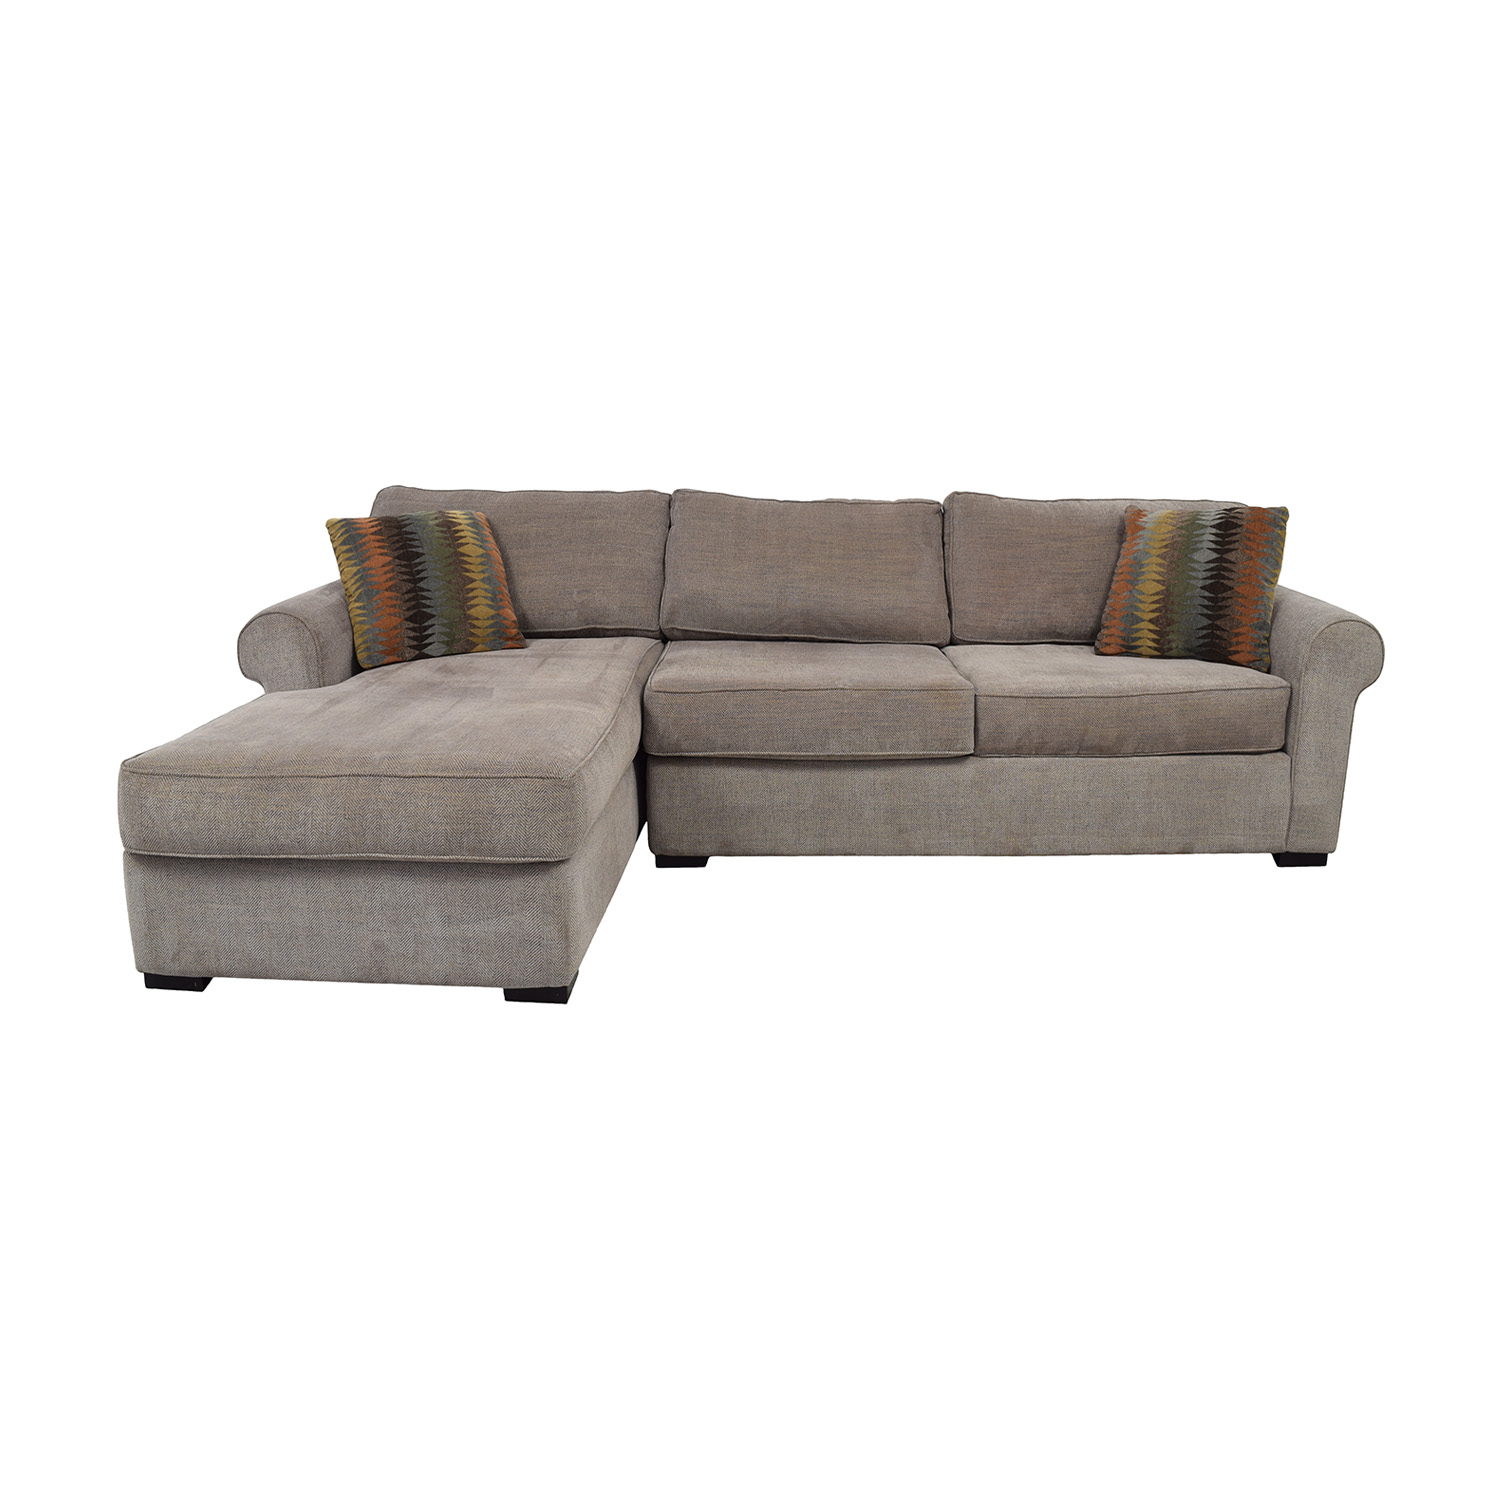 Raymour & Flanigan Raymour & Flanigan Brown Tweed Chaise Sectional for sale